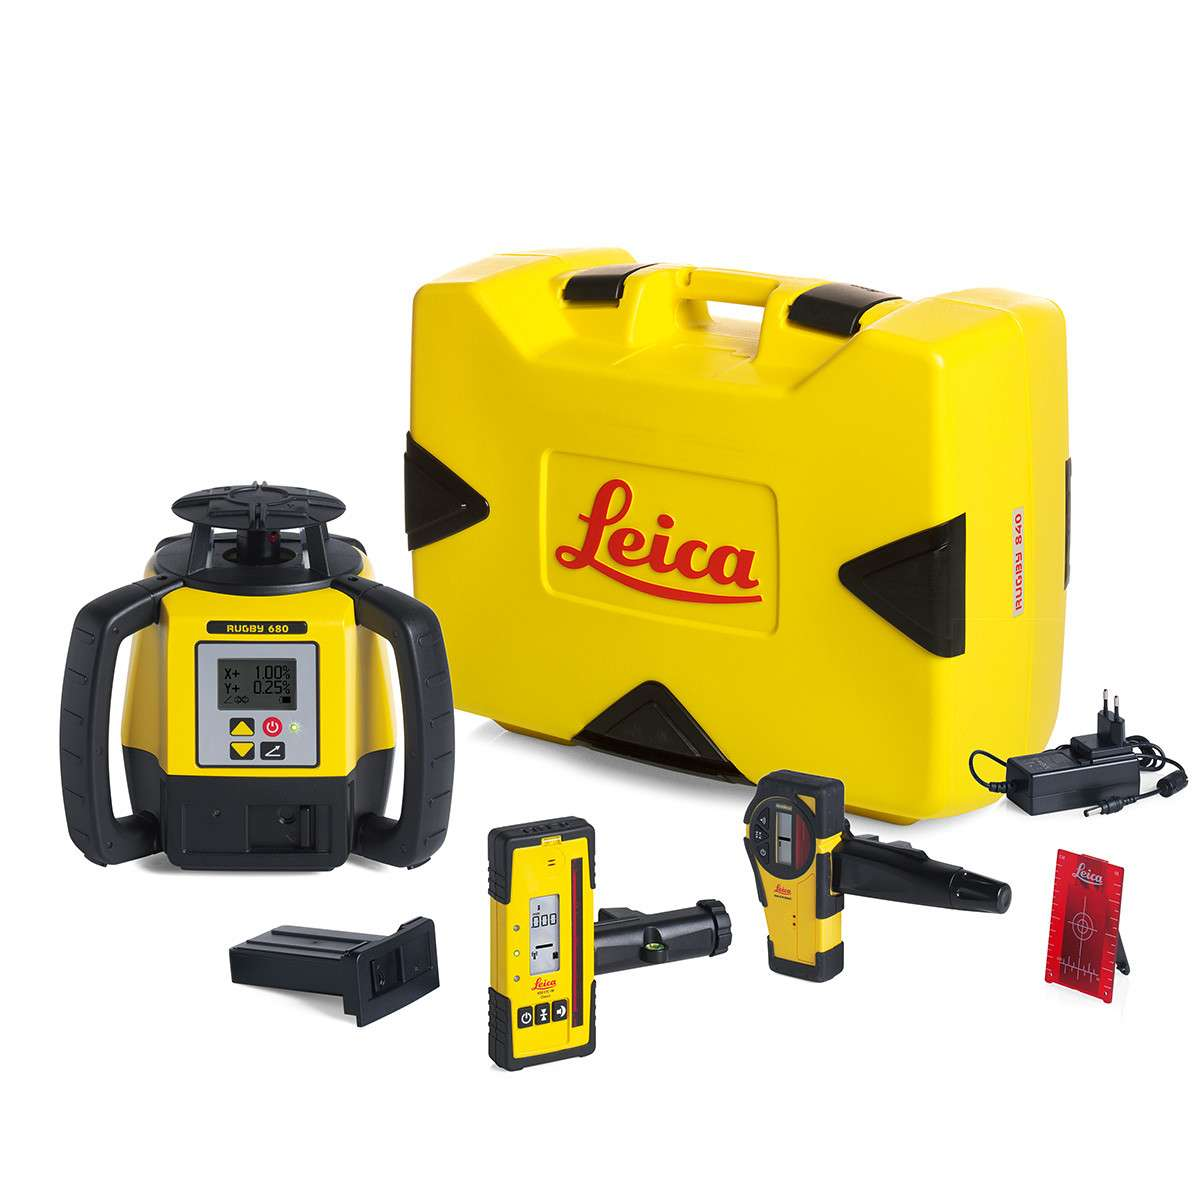 Leica Rugby 610 Laser Level (with Charger / Receiver) Video